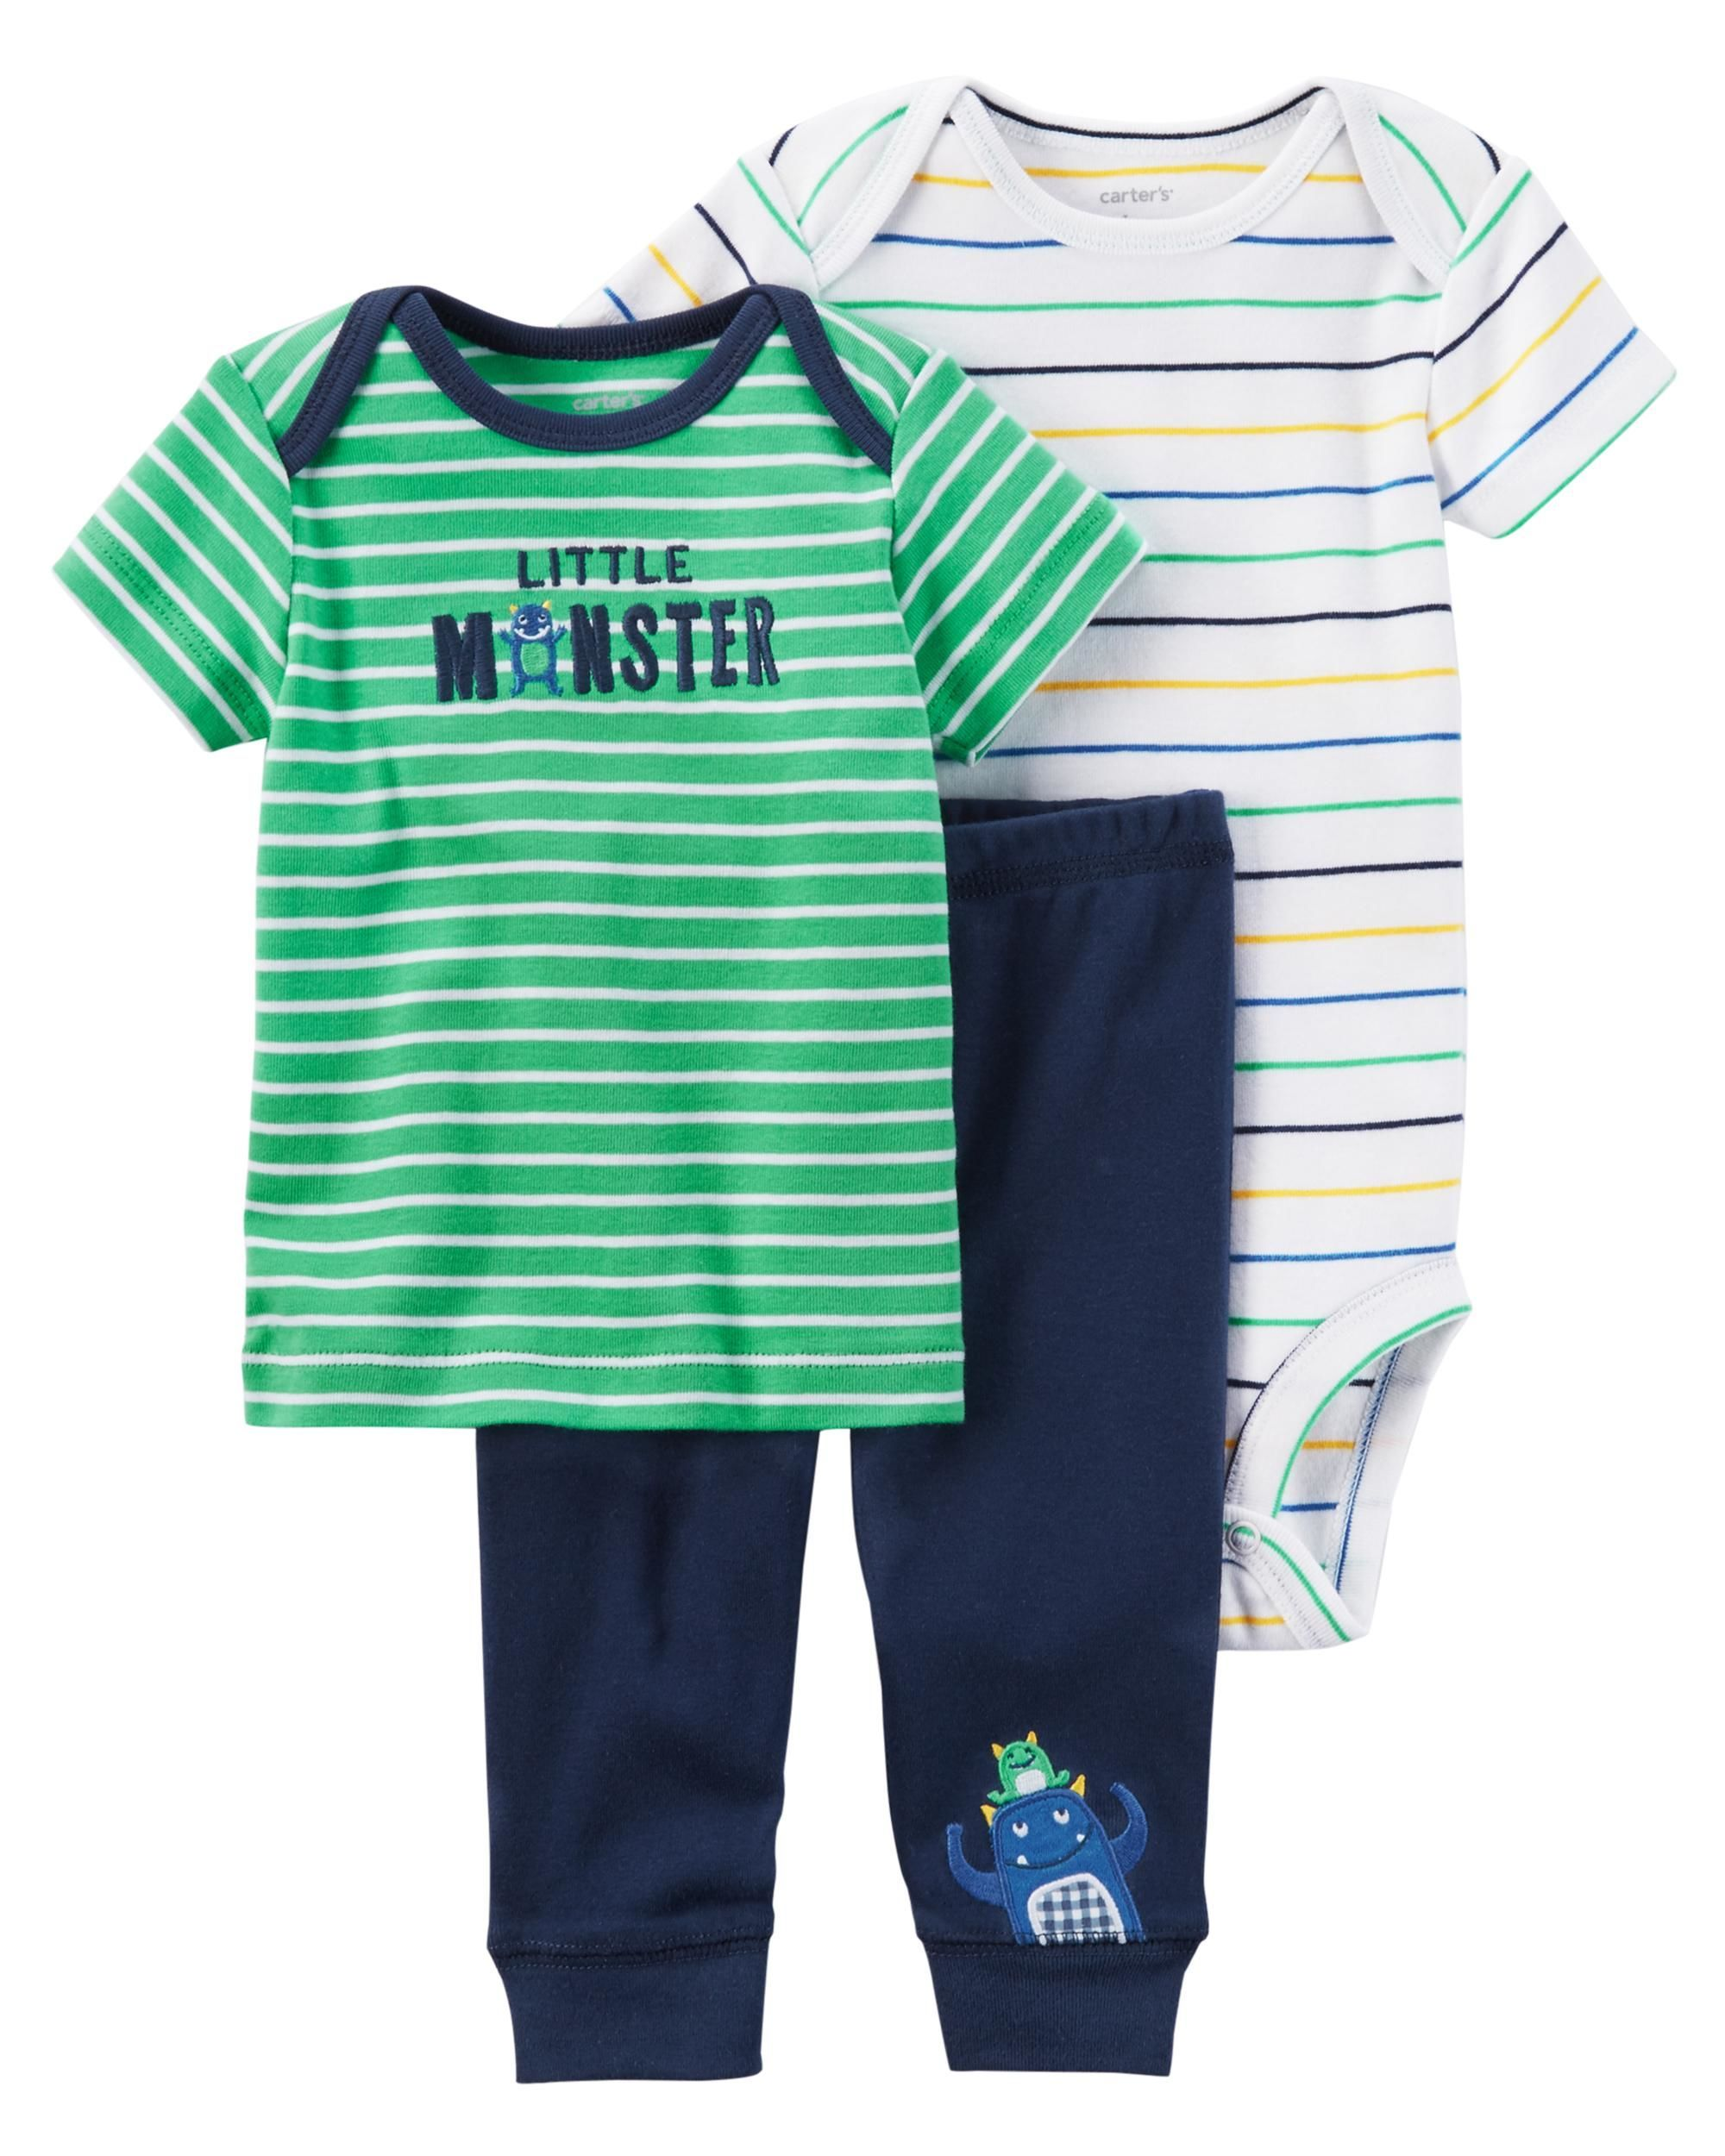 777f586e7 3-Piece Little Character Set | Mama Guga | Carters baby boys ...